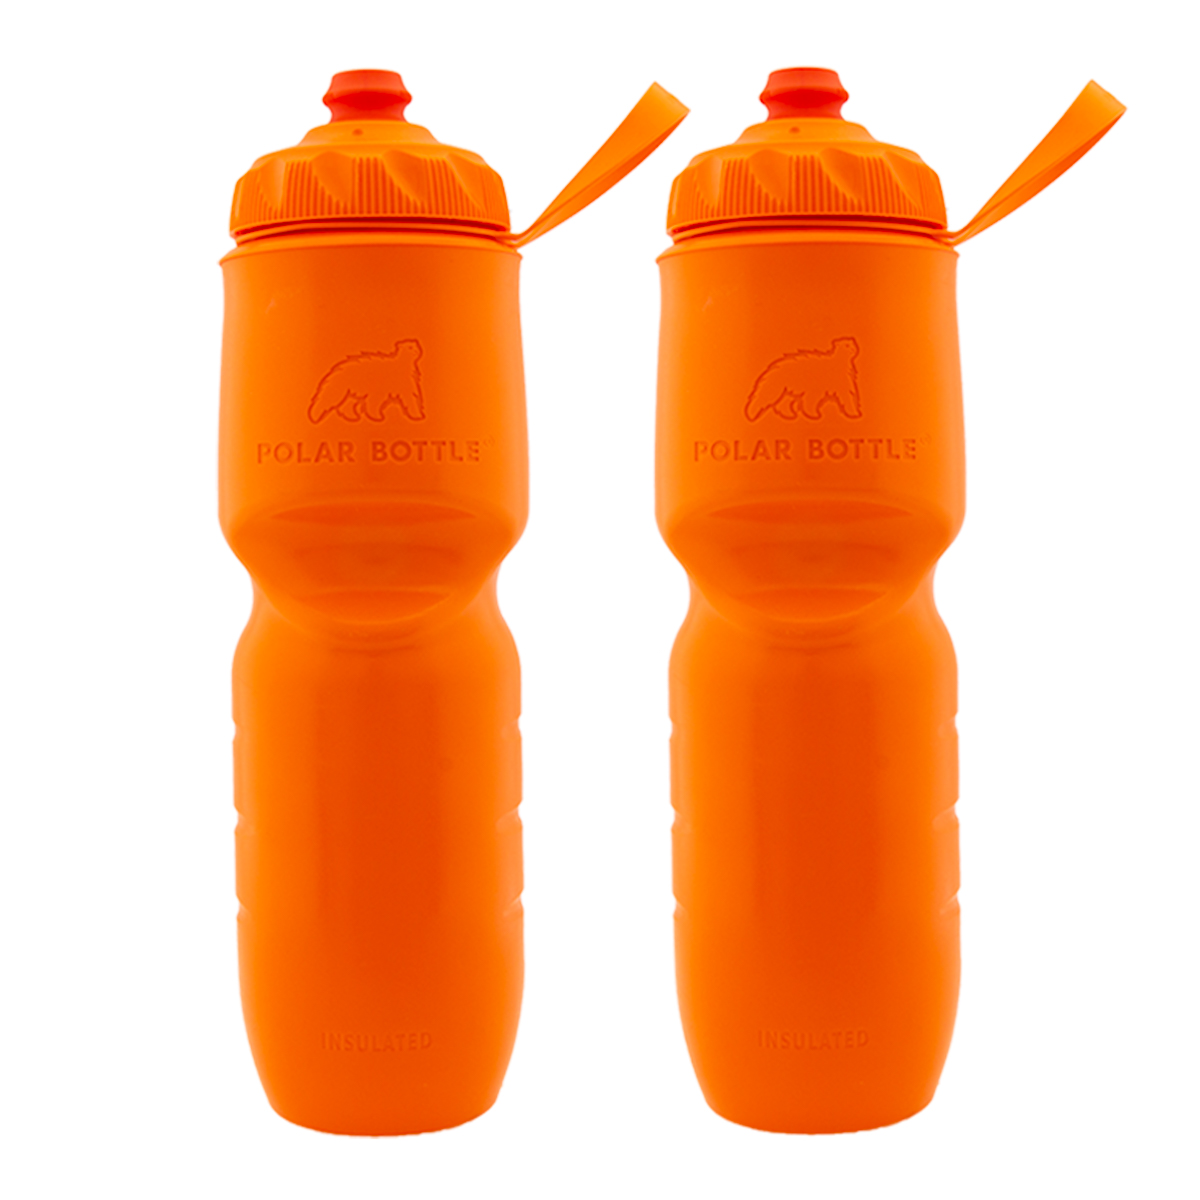 Polar Bottle (2 Pack) Insulated Water Bottle, 24 Oz Squeeze And Handheld Water Bottle Set, BPA Free For Sports, Exercise, Fitness, Cycling, Bicycle